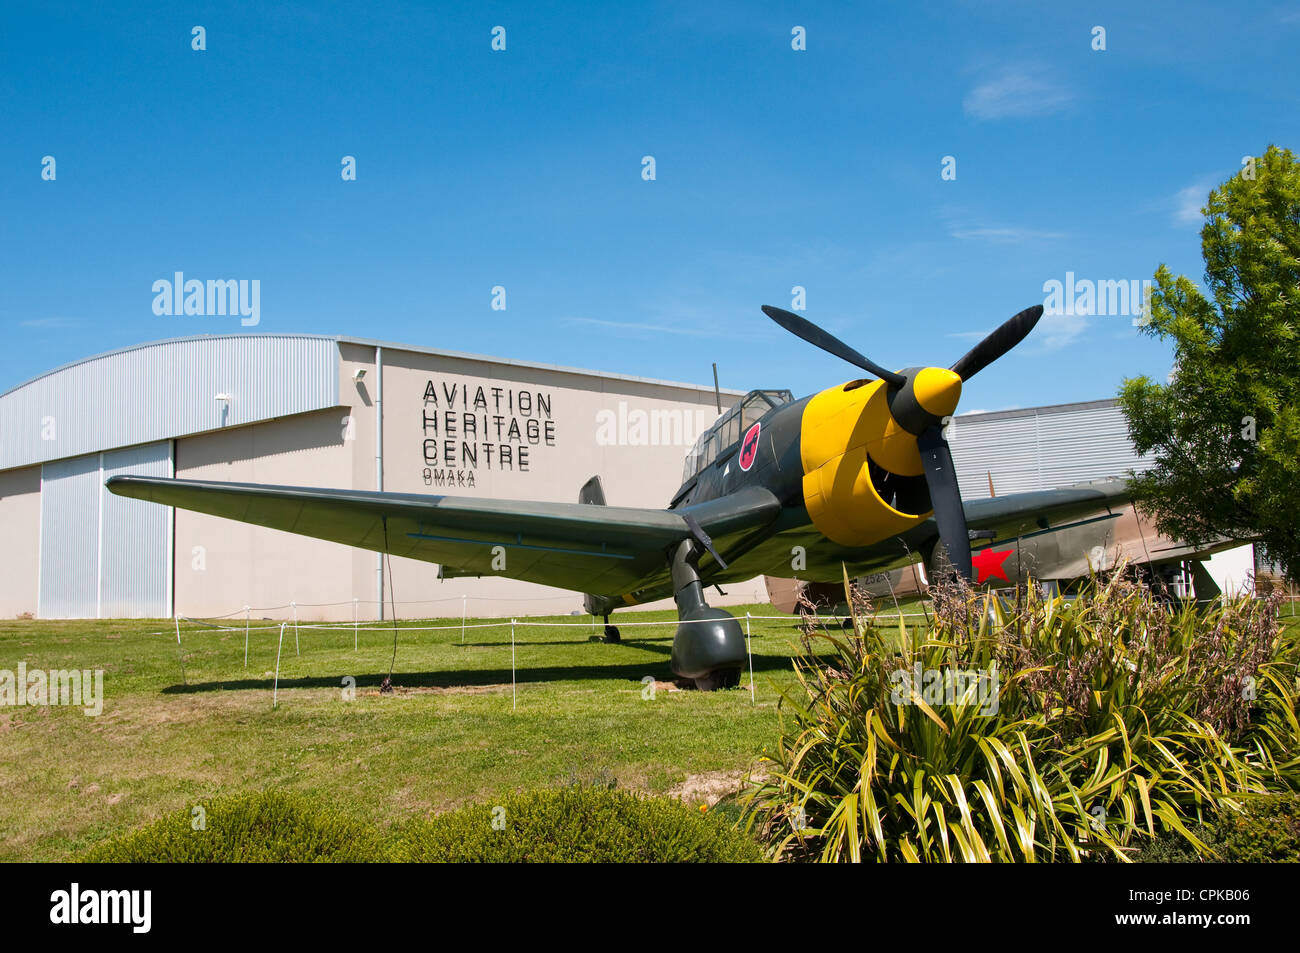 New Zealand South Island Marlborough, exhibits at Omaka Aviation Heritage Centre of WWI aerial combat airplanes - Stock Image